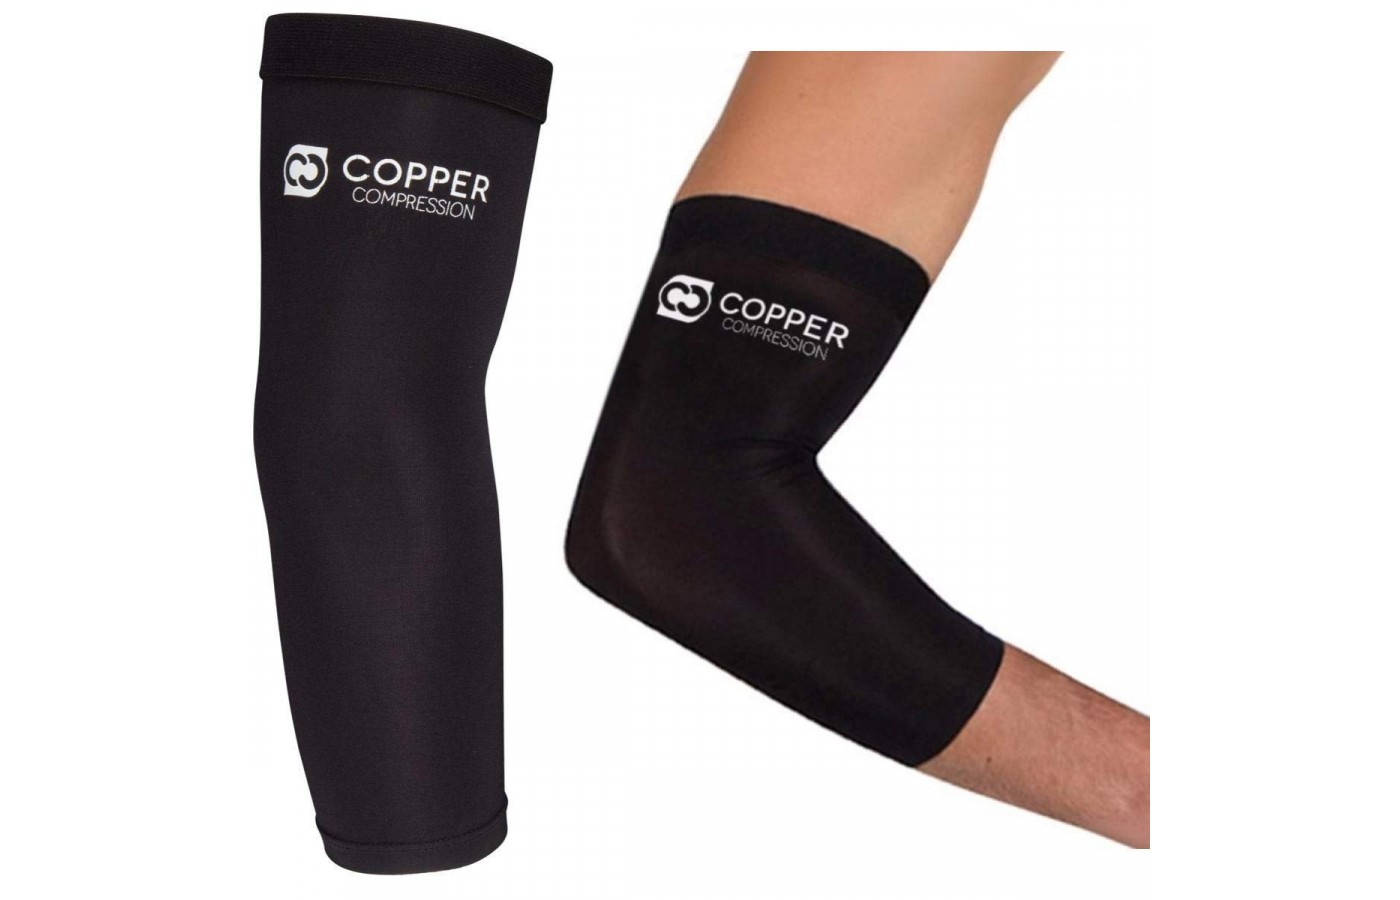 The longer style of the Copper Compression Elbow Sleeve provides more support.